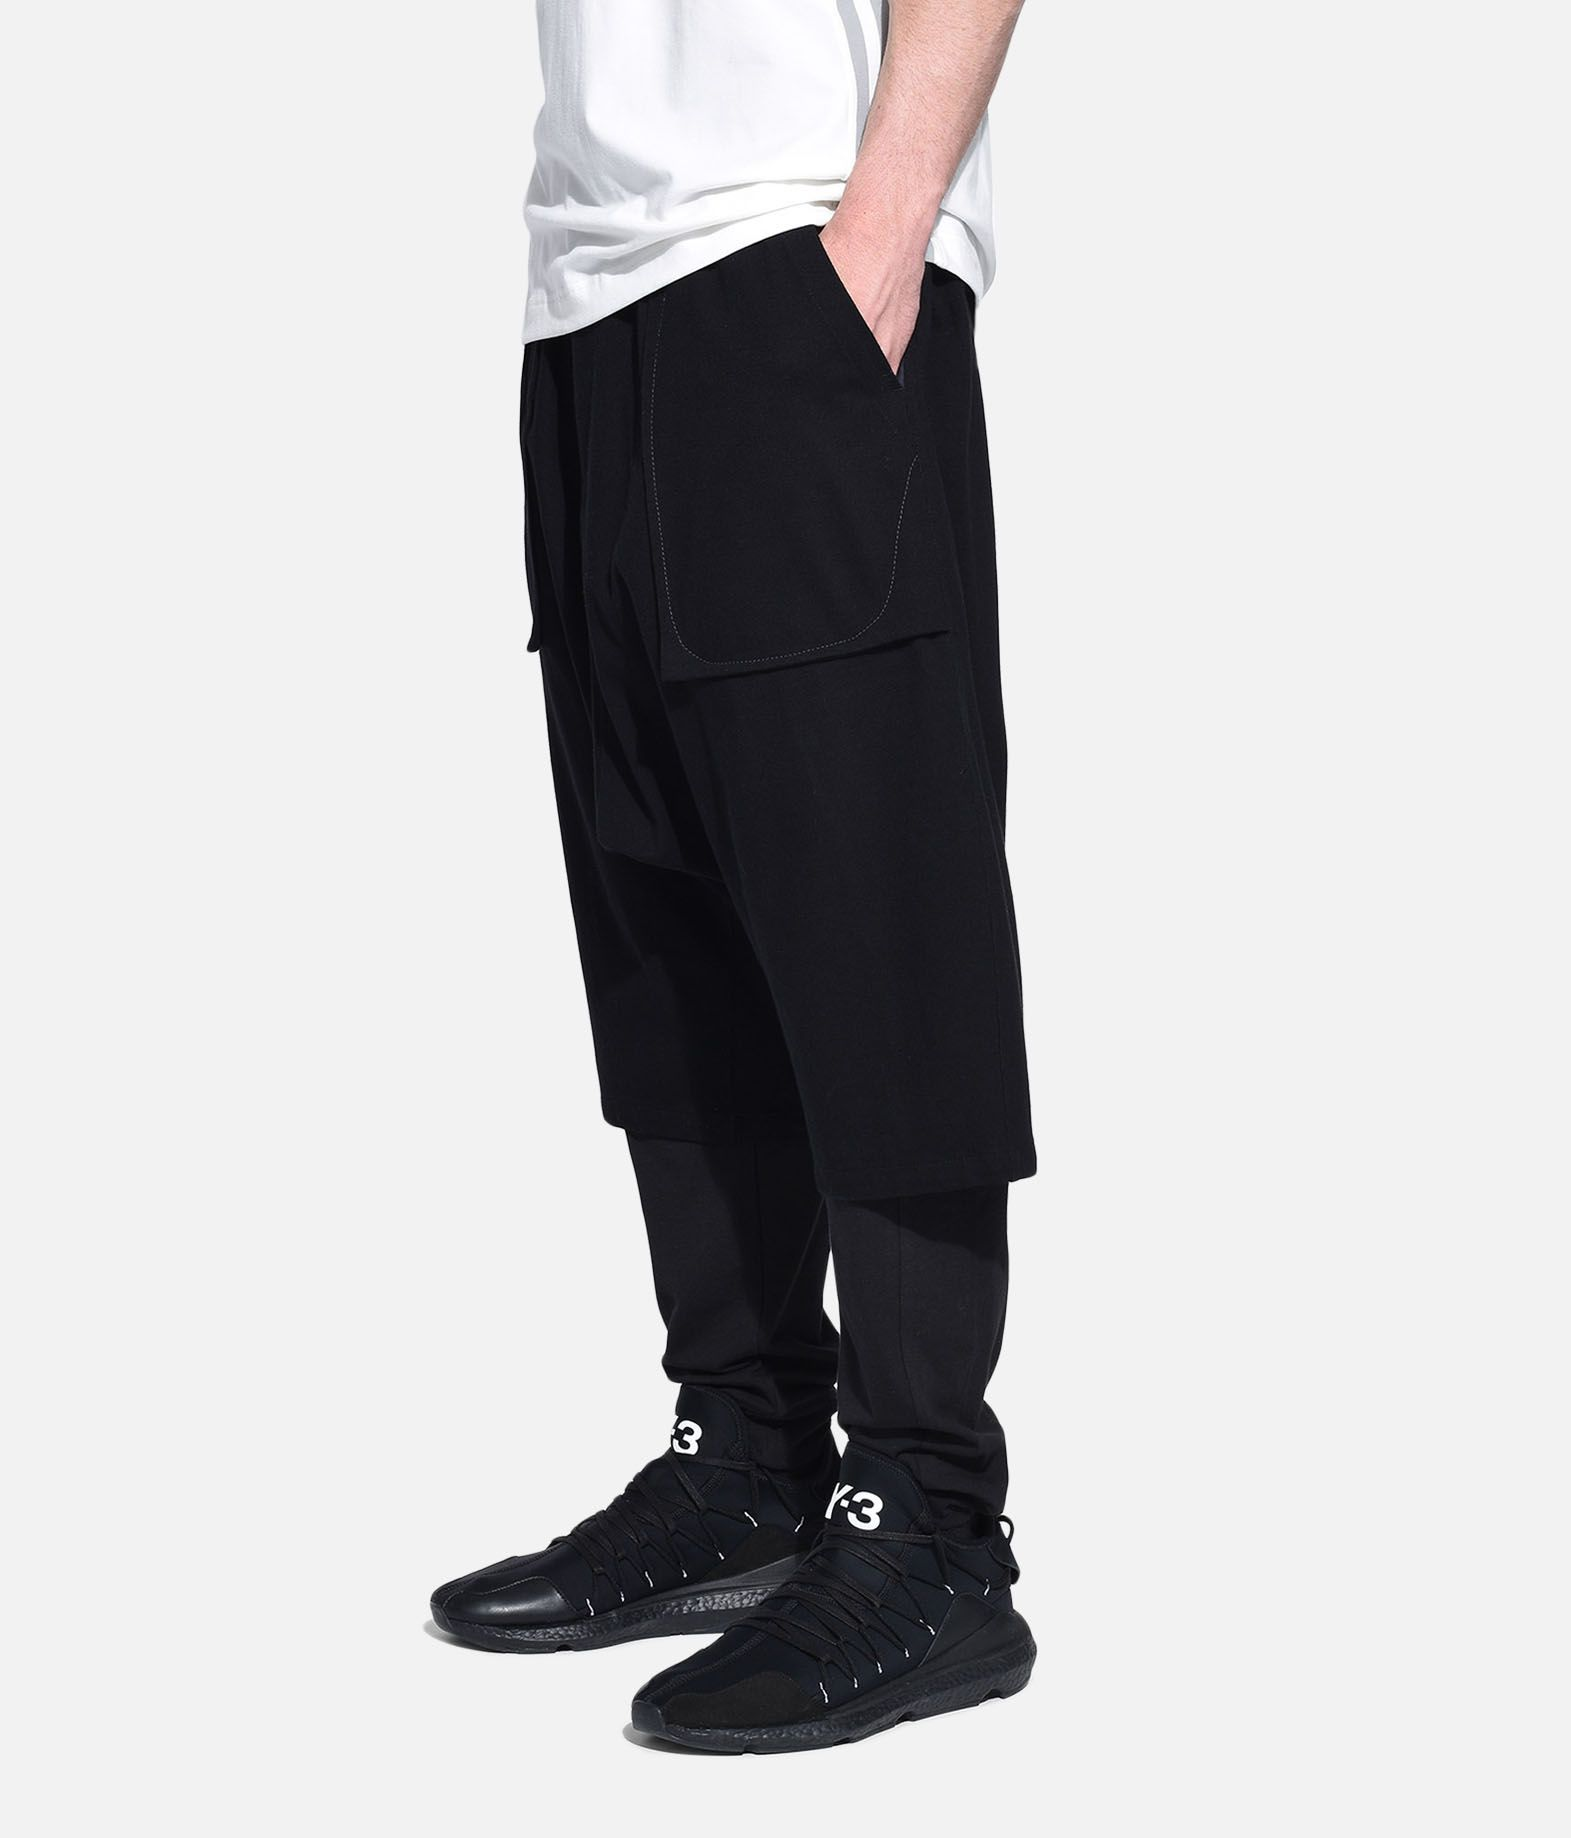 Y-3 Y-3 Sarouel Shorts Sweat shorts Man e